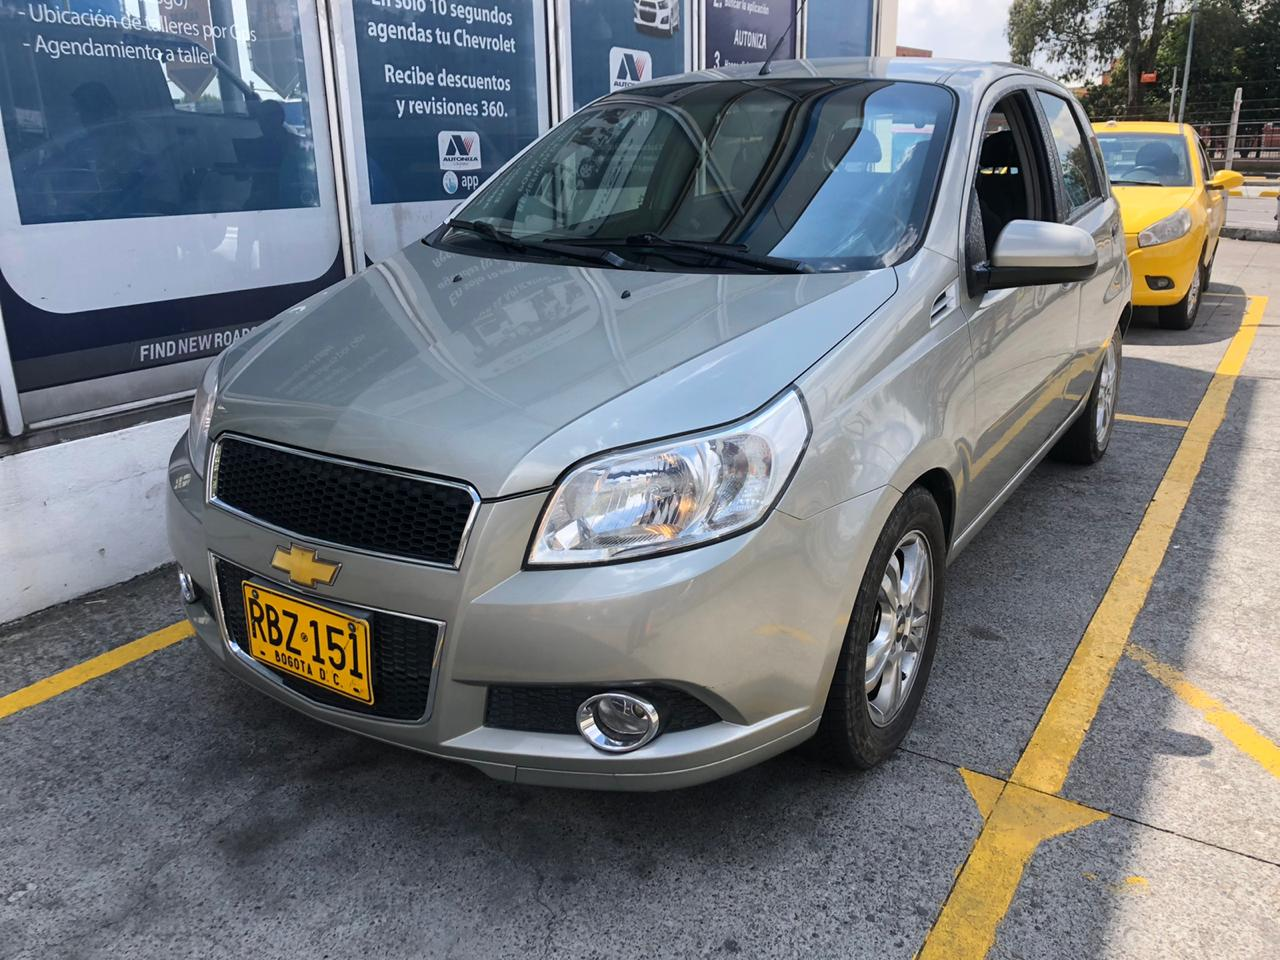 2010 CHEVROLET AVEO EMOTION GT 1.6L FULL PASAJEROS 1,6